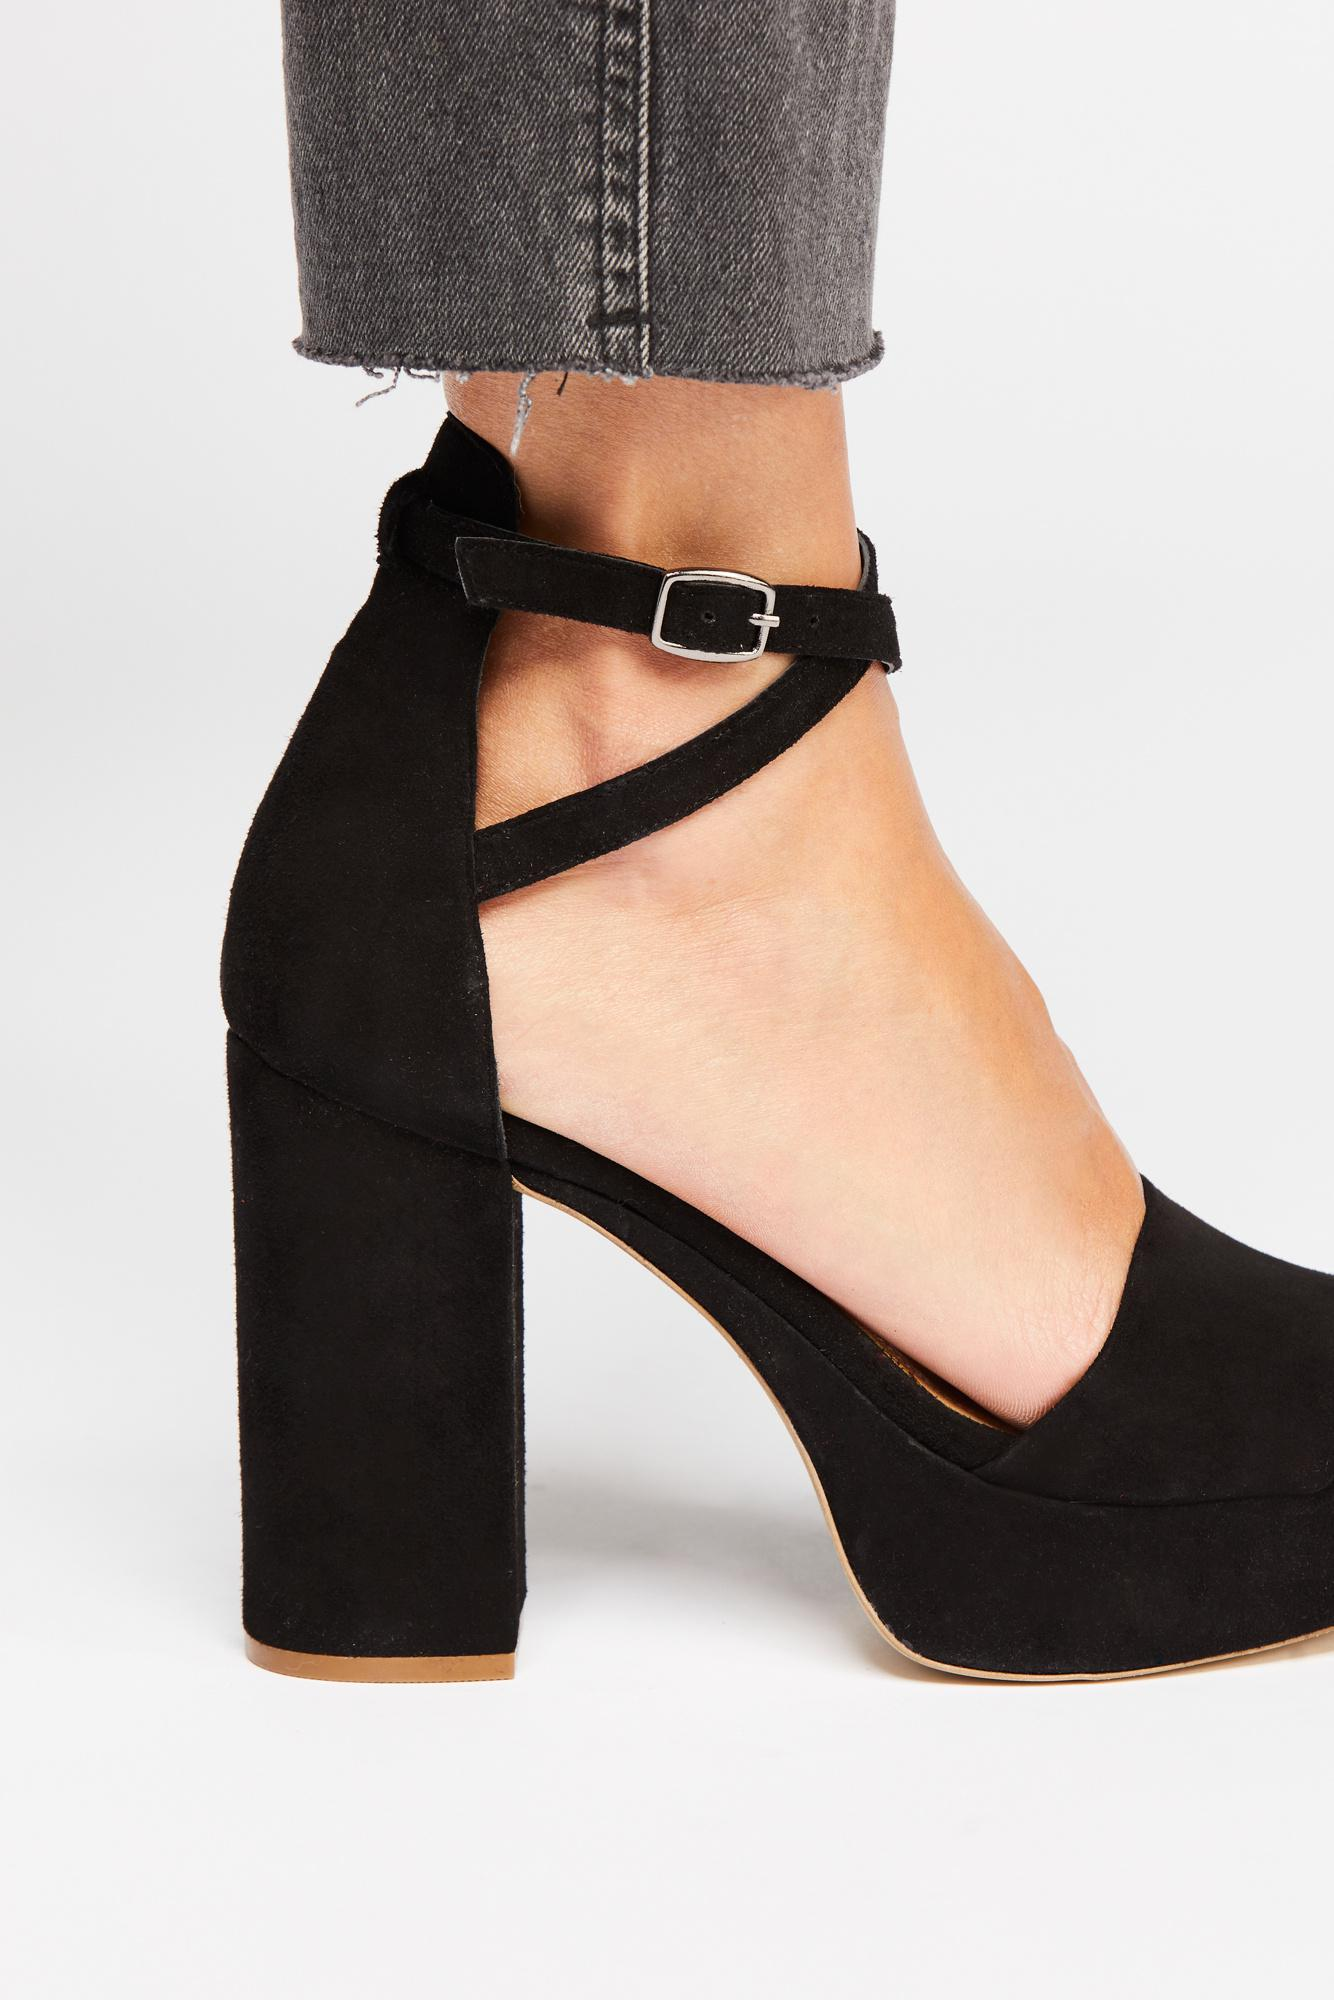 d971201da12 Free People Bianca Platform By Fp Collection in Black - Lyst